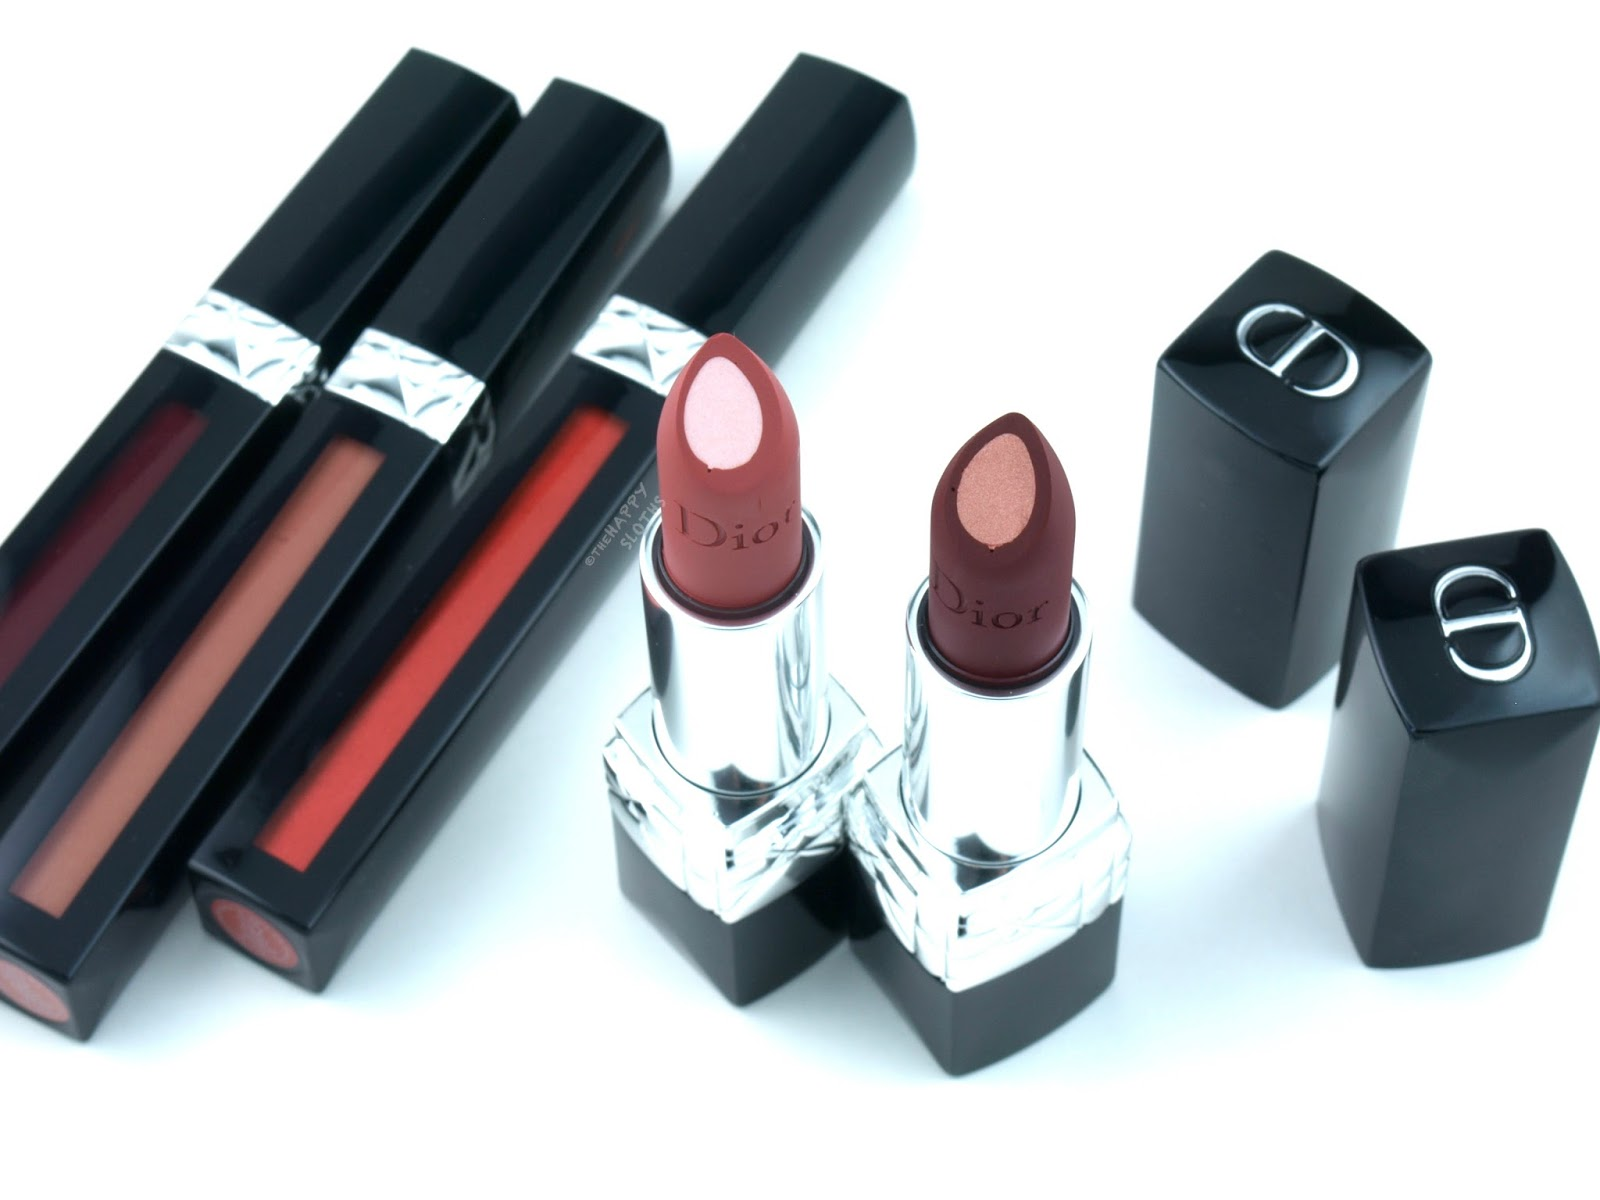 Dior Rouge Dior Double Rouge Lipstick: Review and Swatches